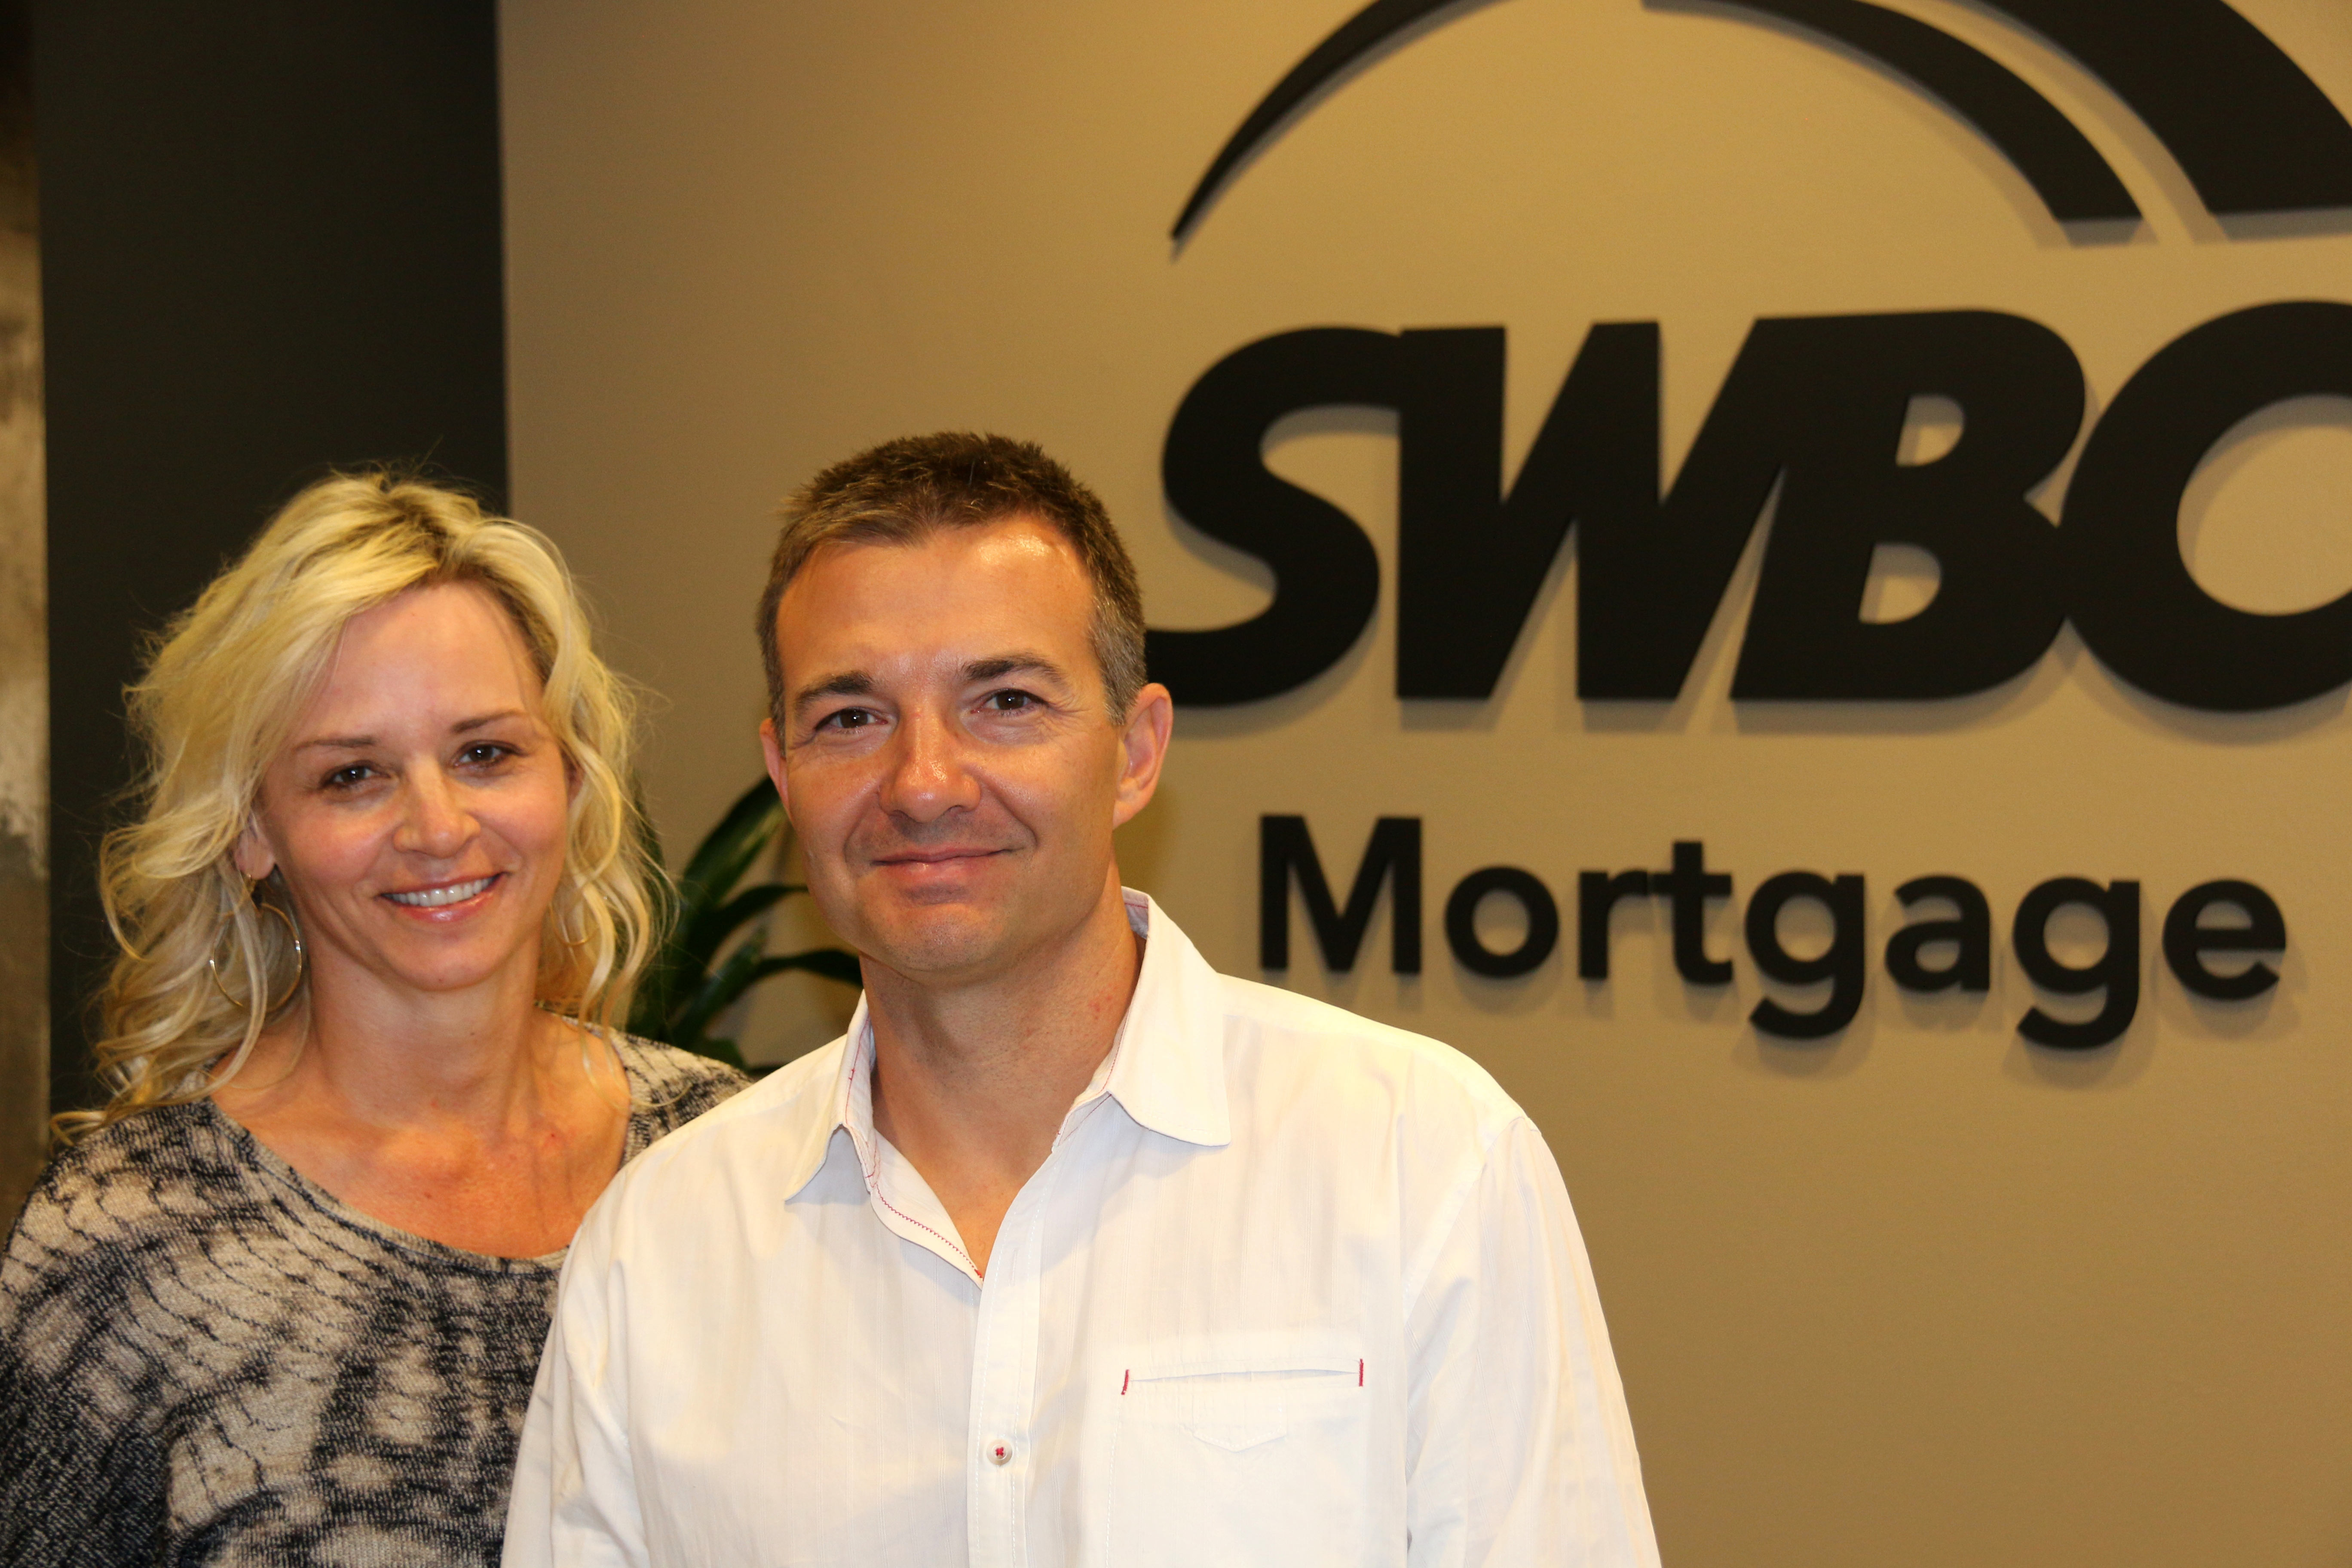 Team Sessa | SWBC Mortgage